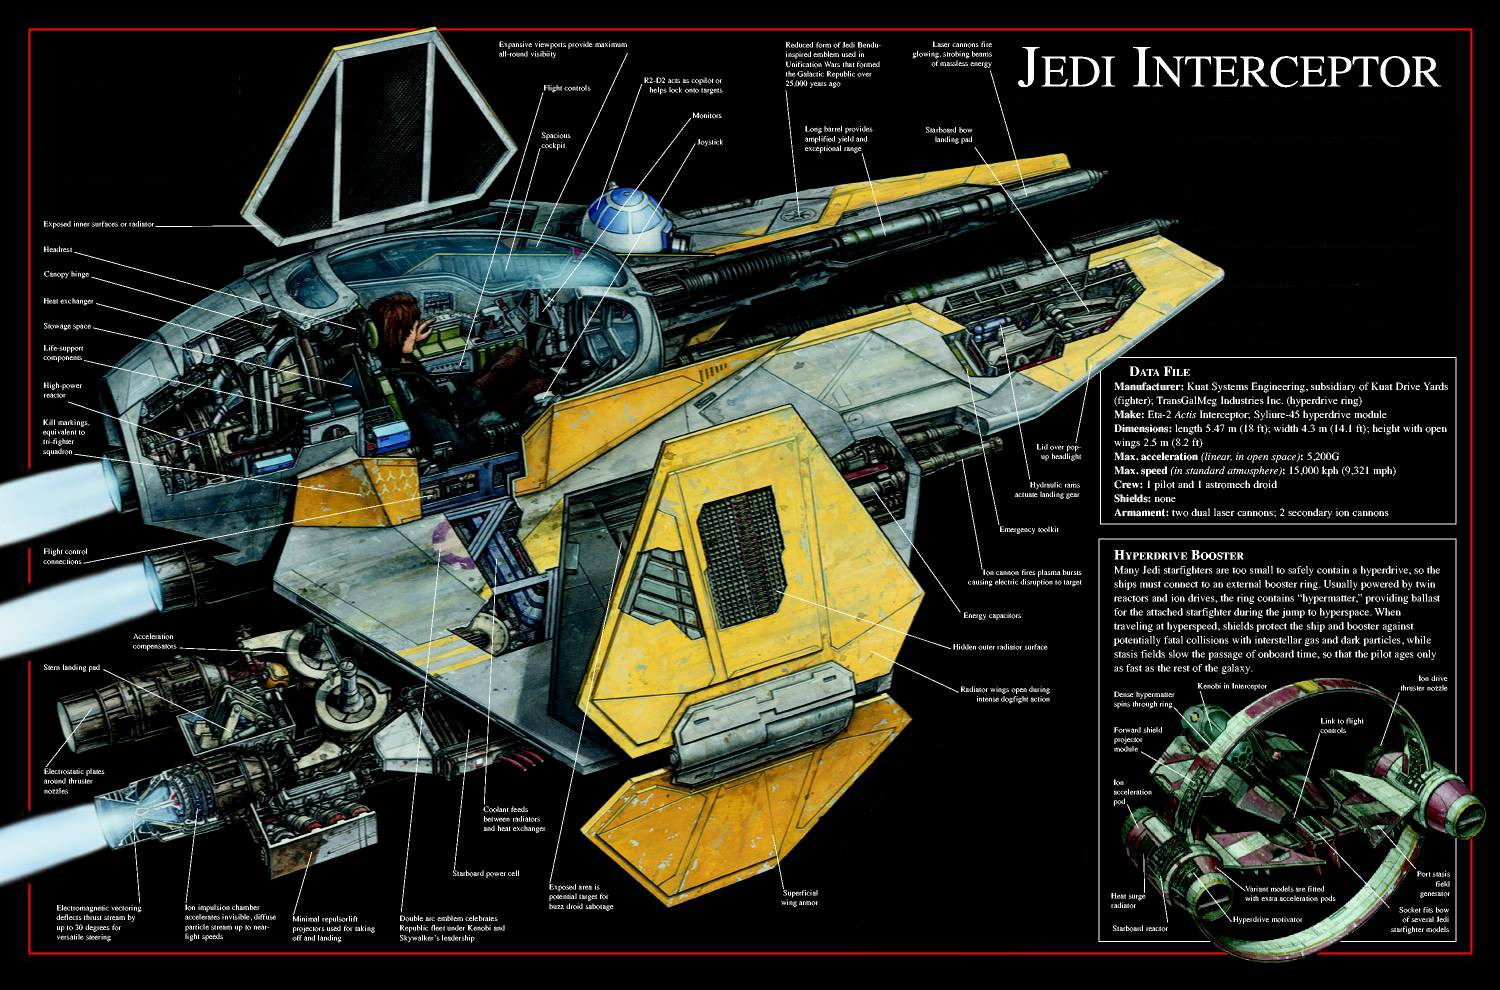 eta 2 actis class interceptor wookieepedia fandom powered by wikia